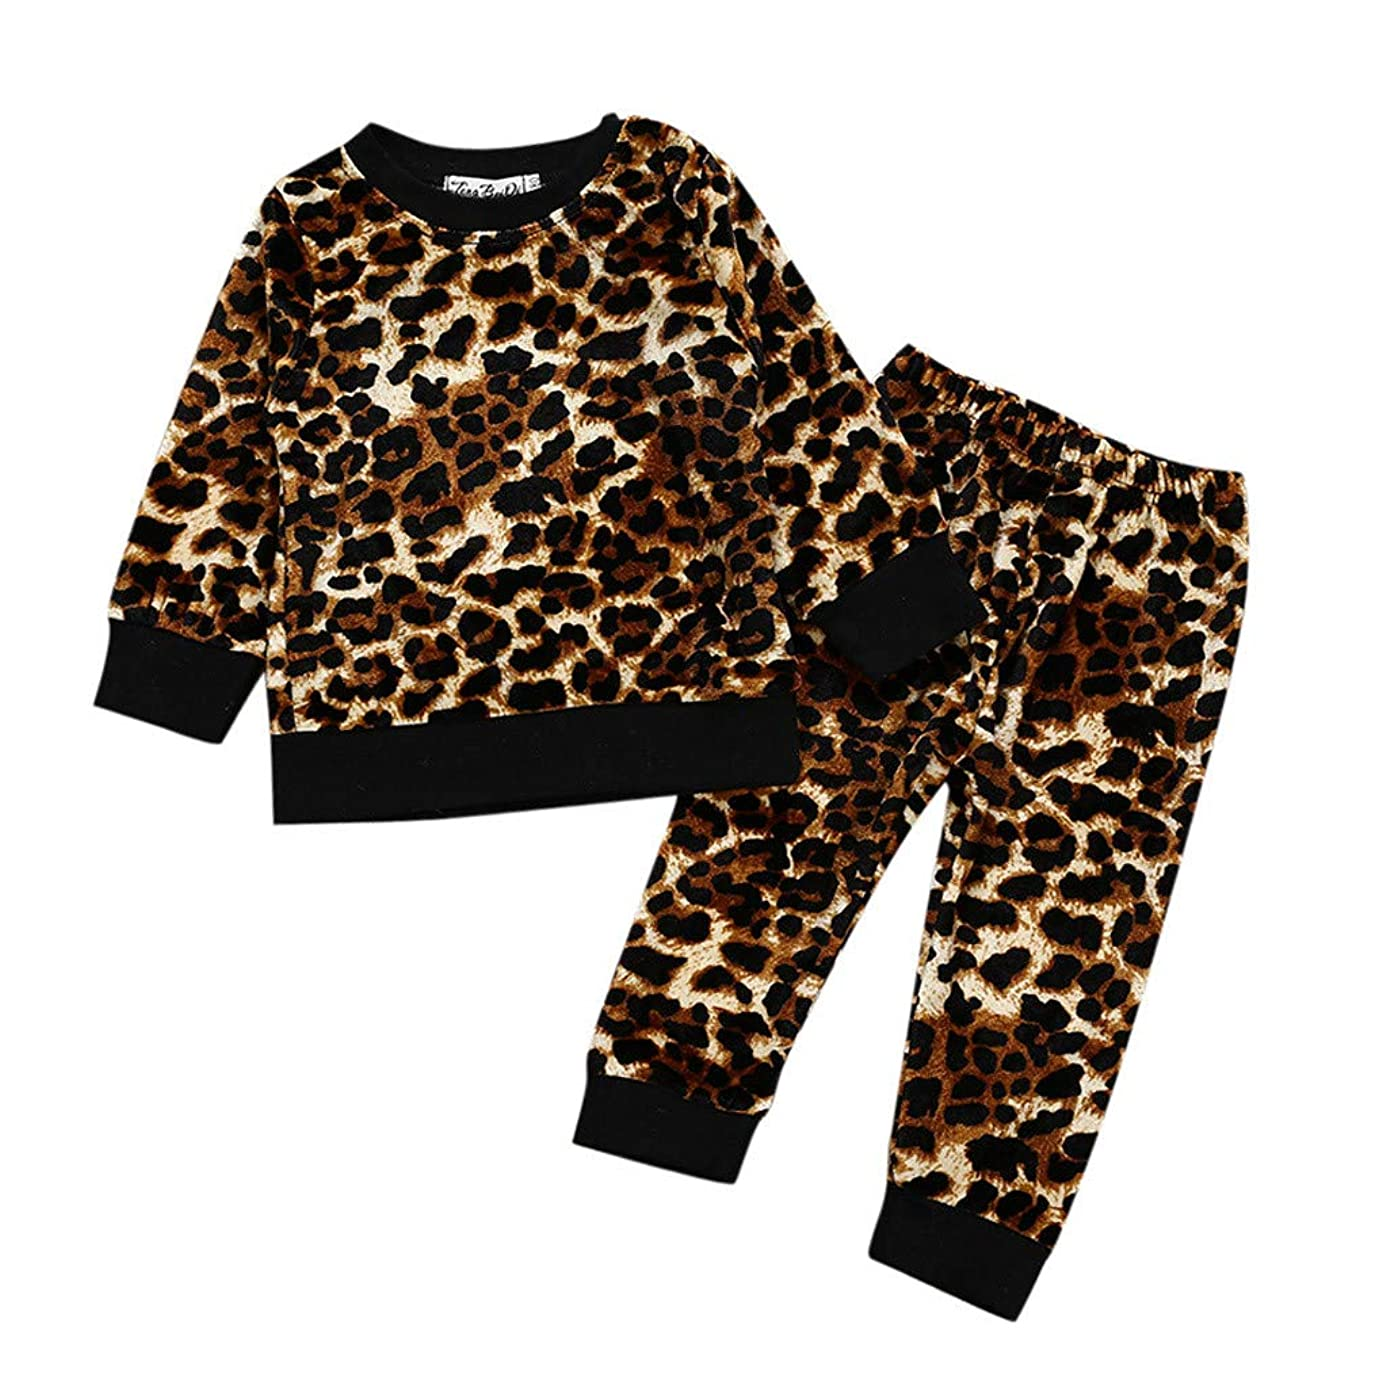 LONGDAY 2PCS Baby Kids Set Long Sleeve Leopard Print Tracksuit Hooded Tops + Pants Outfits Set